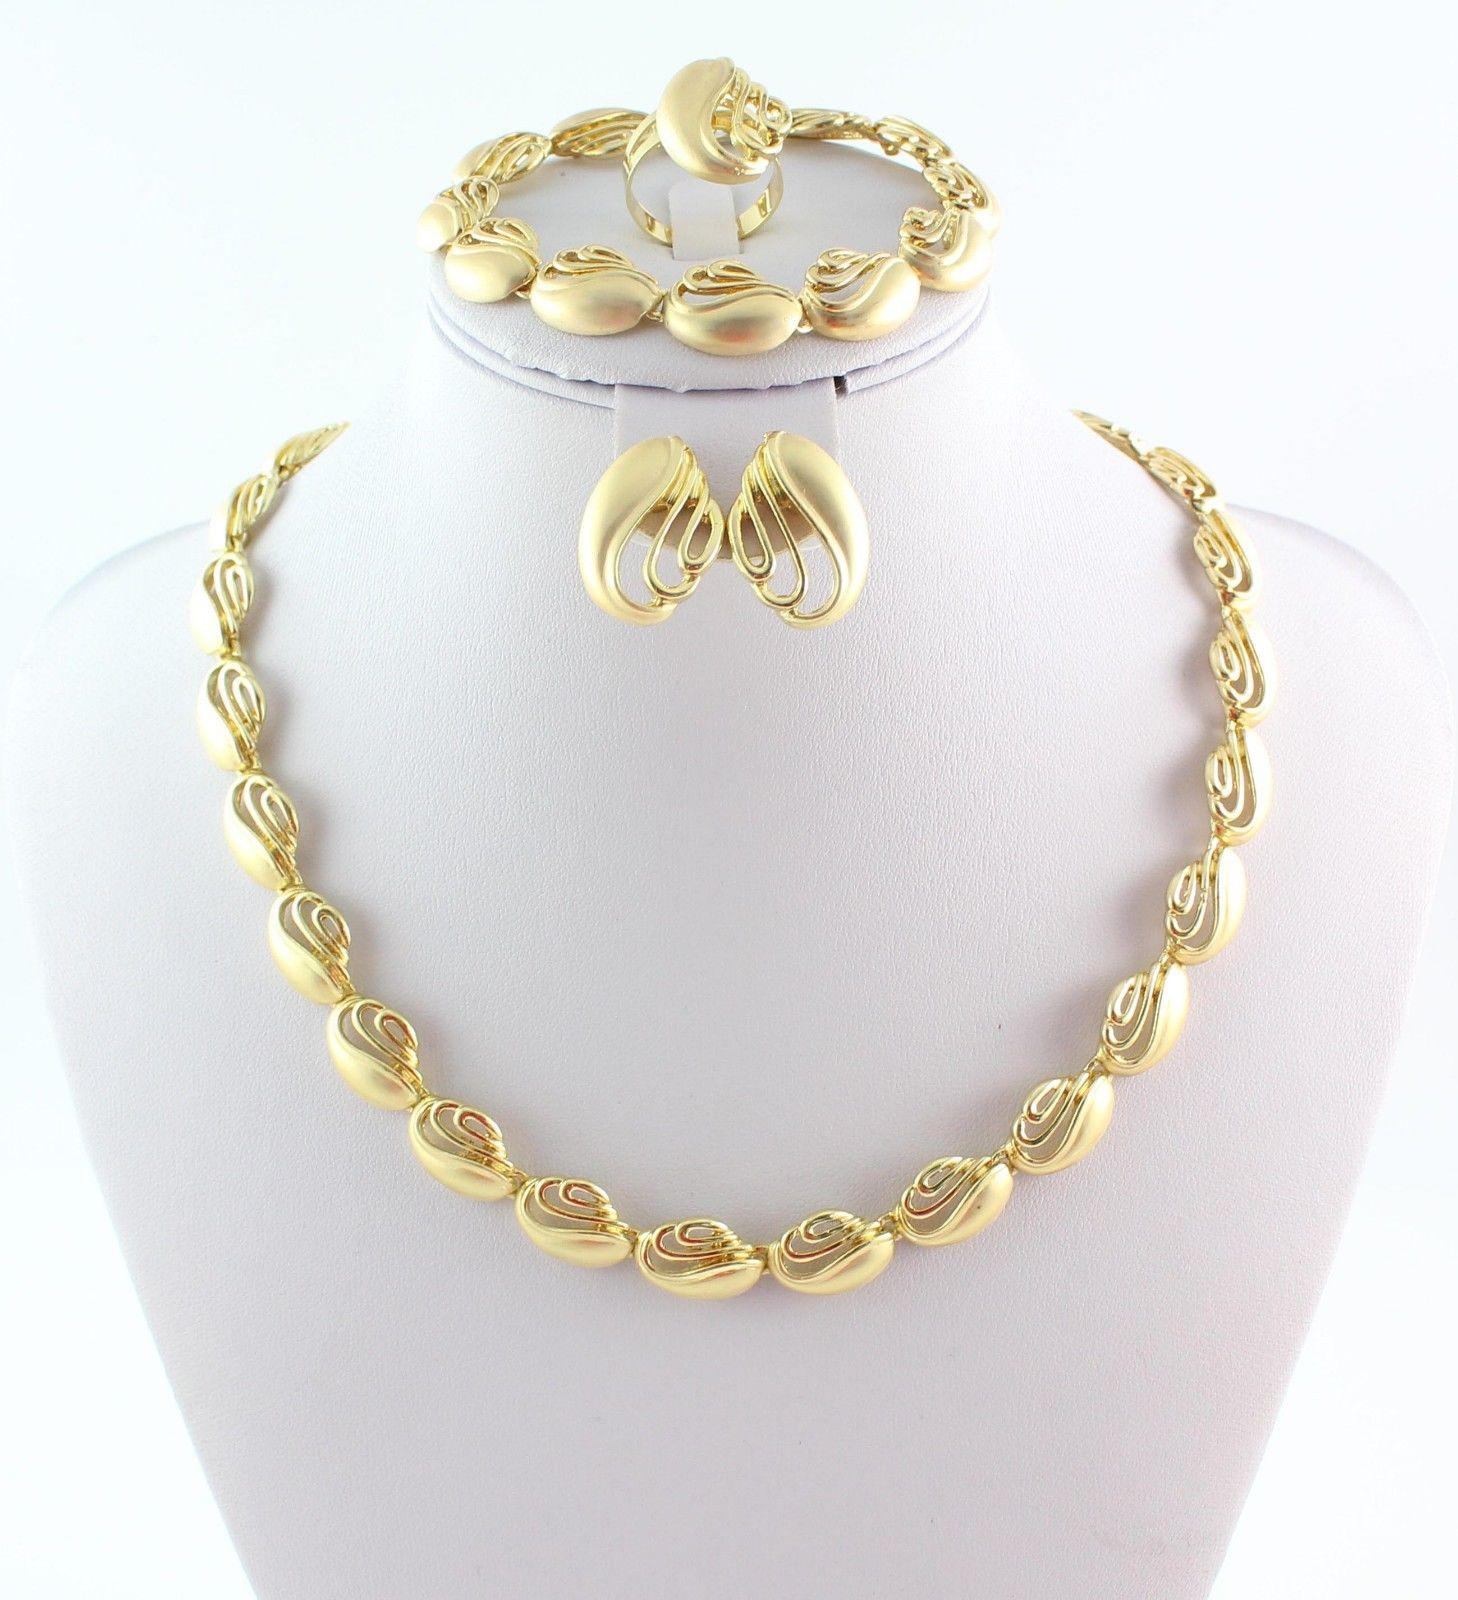 Gold Plated Silver Necklace Set 290 00: Gold Plated African Costume Jewelry Set Necklace Bracelet